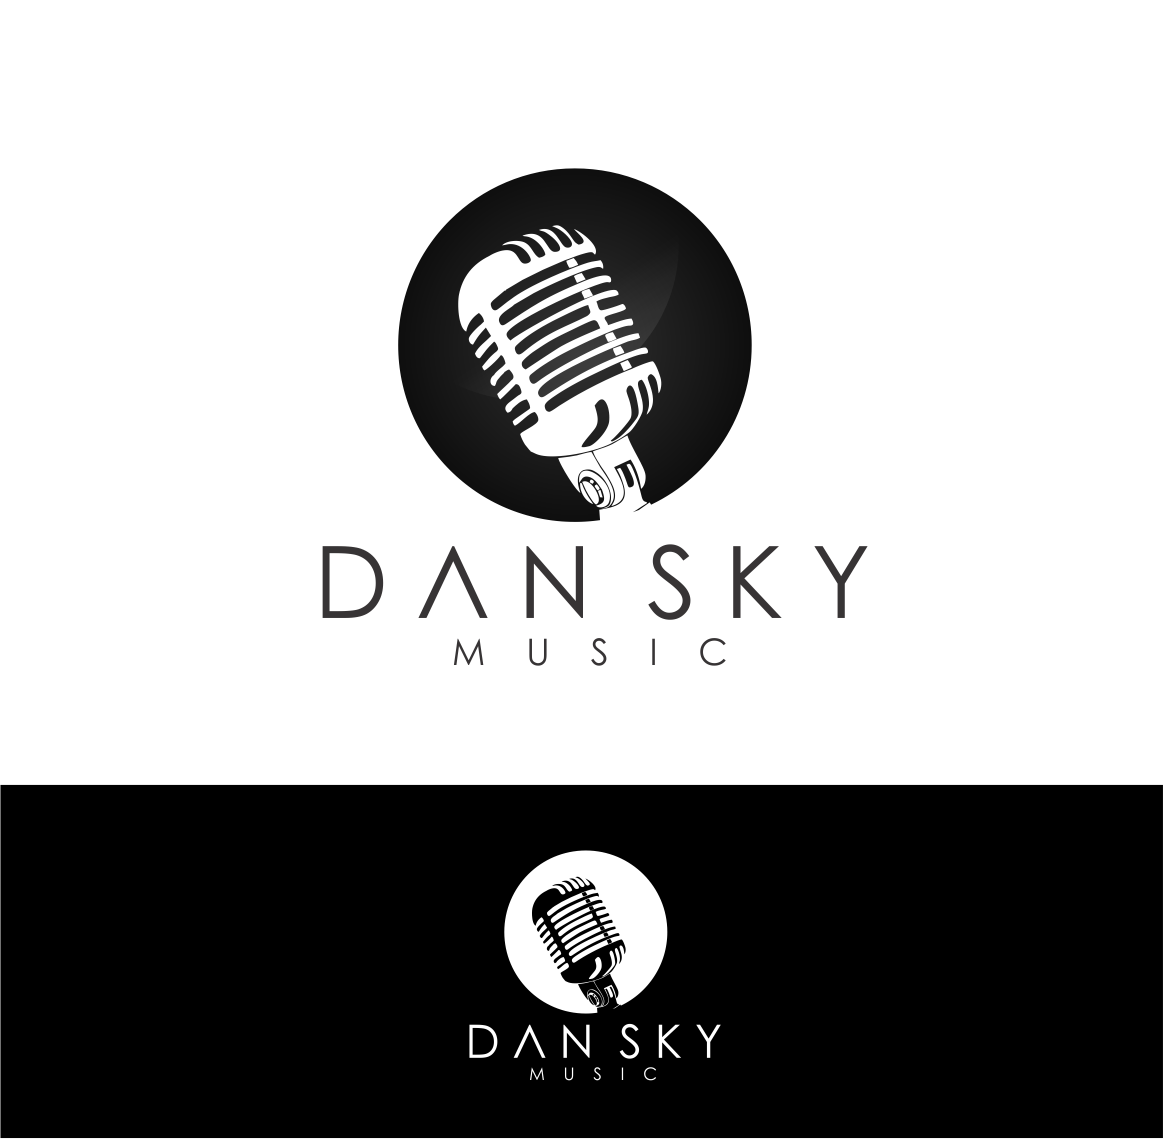 bold modern it company logo design for dan sky music by